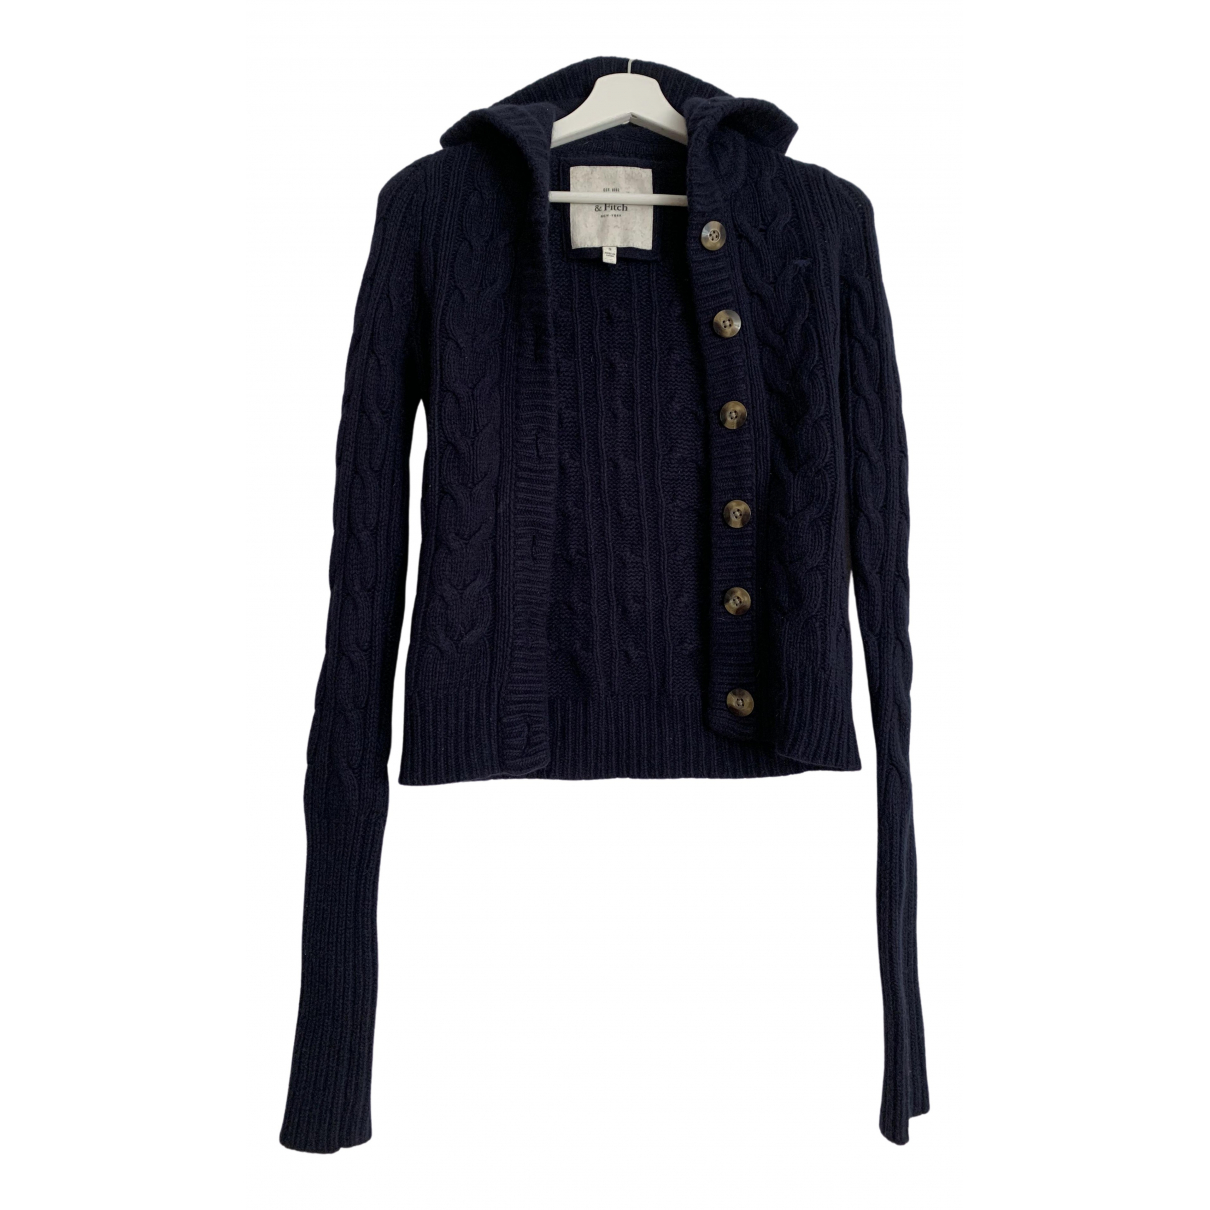 Abercrombie & Fitch \N Navy Wool Knitwear for Women S International